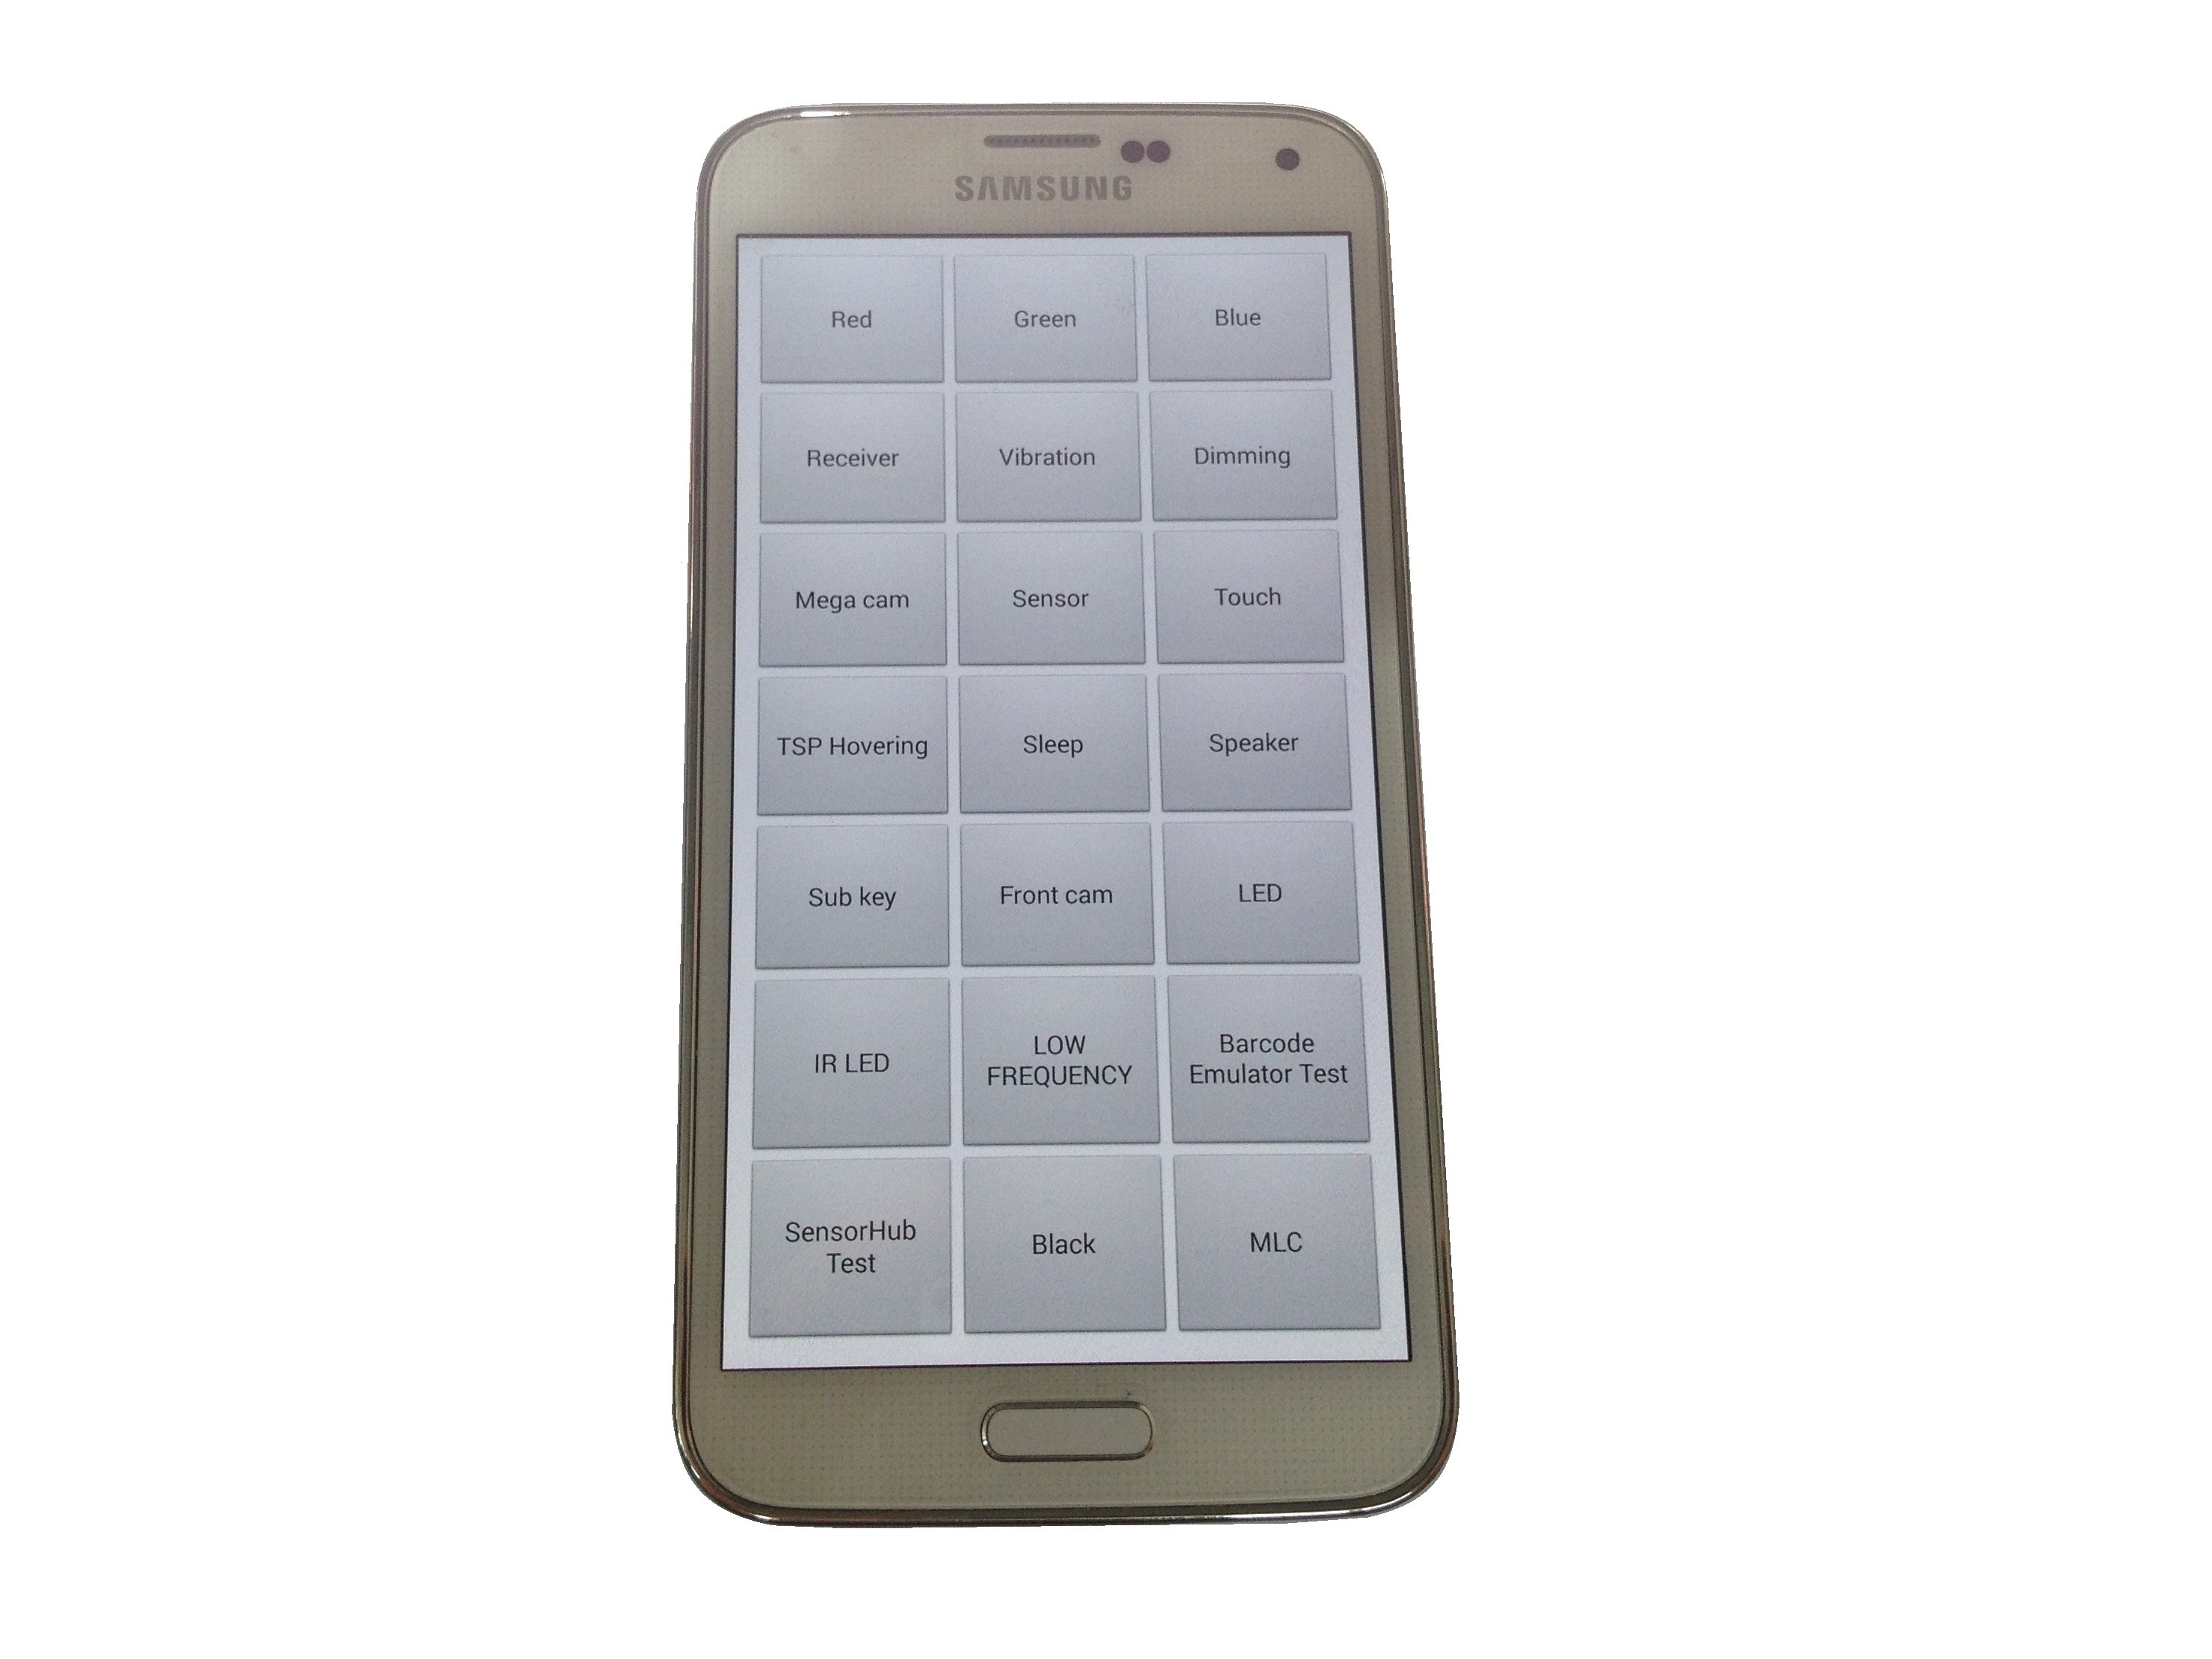 Samsung Galaxy S5 Repair Ifixit Lcd Touchscreen White Oem Secret Codes Service Test Menu